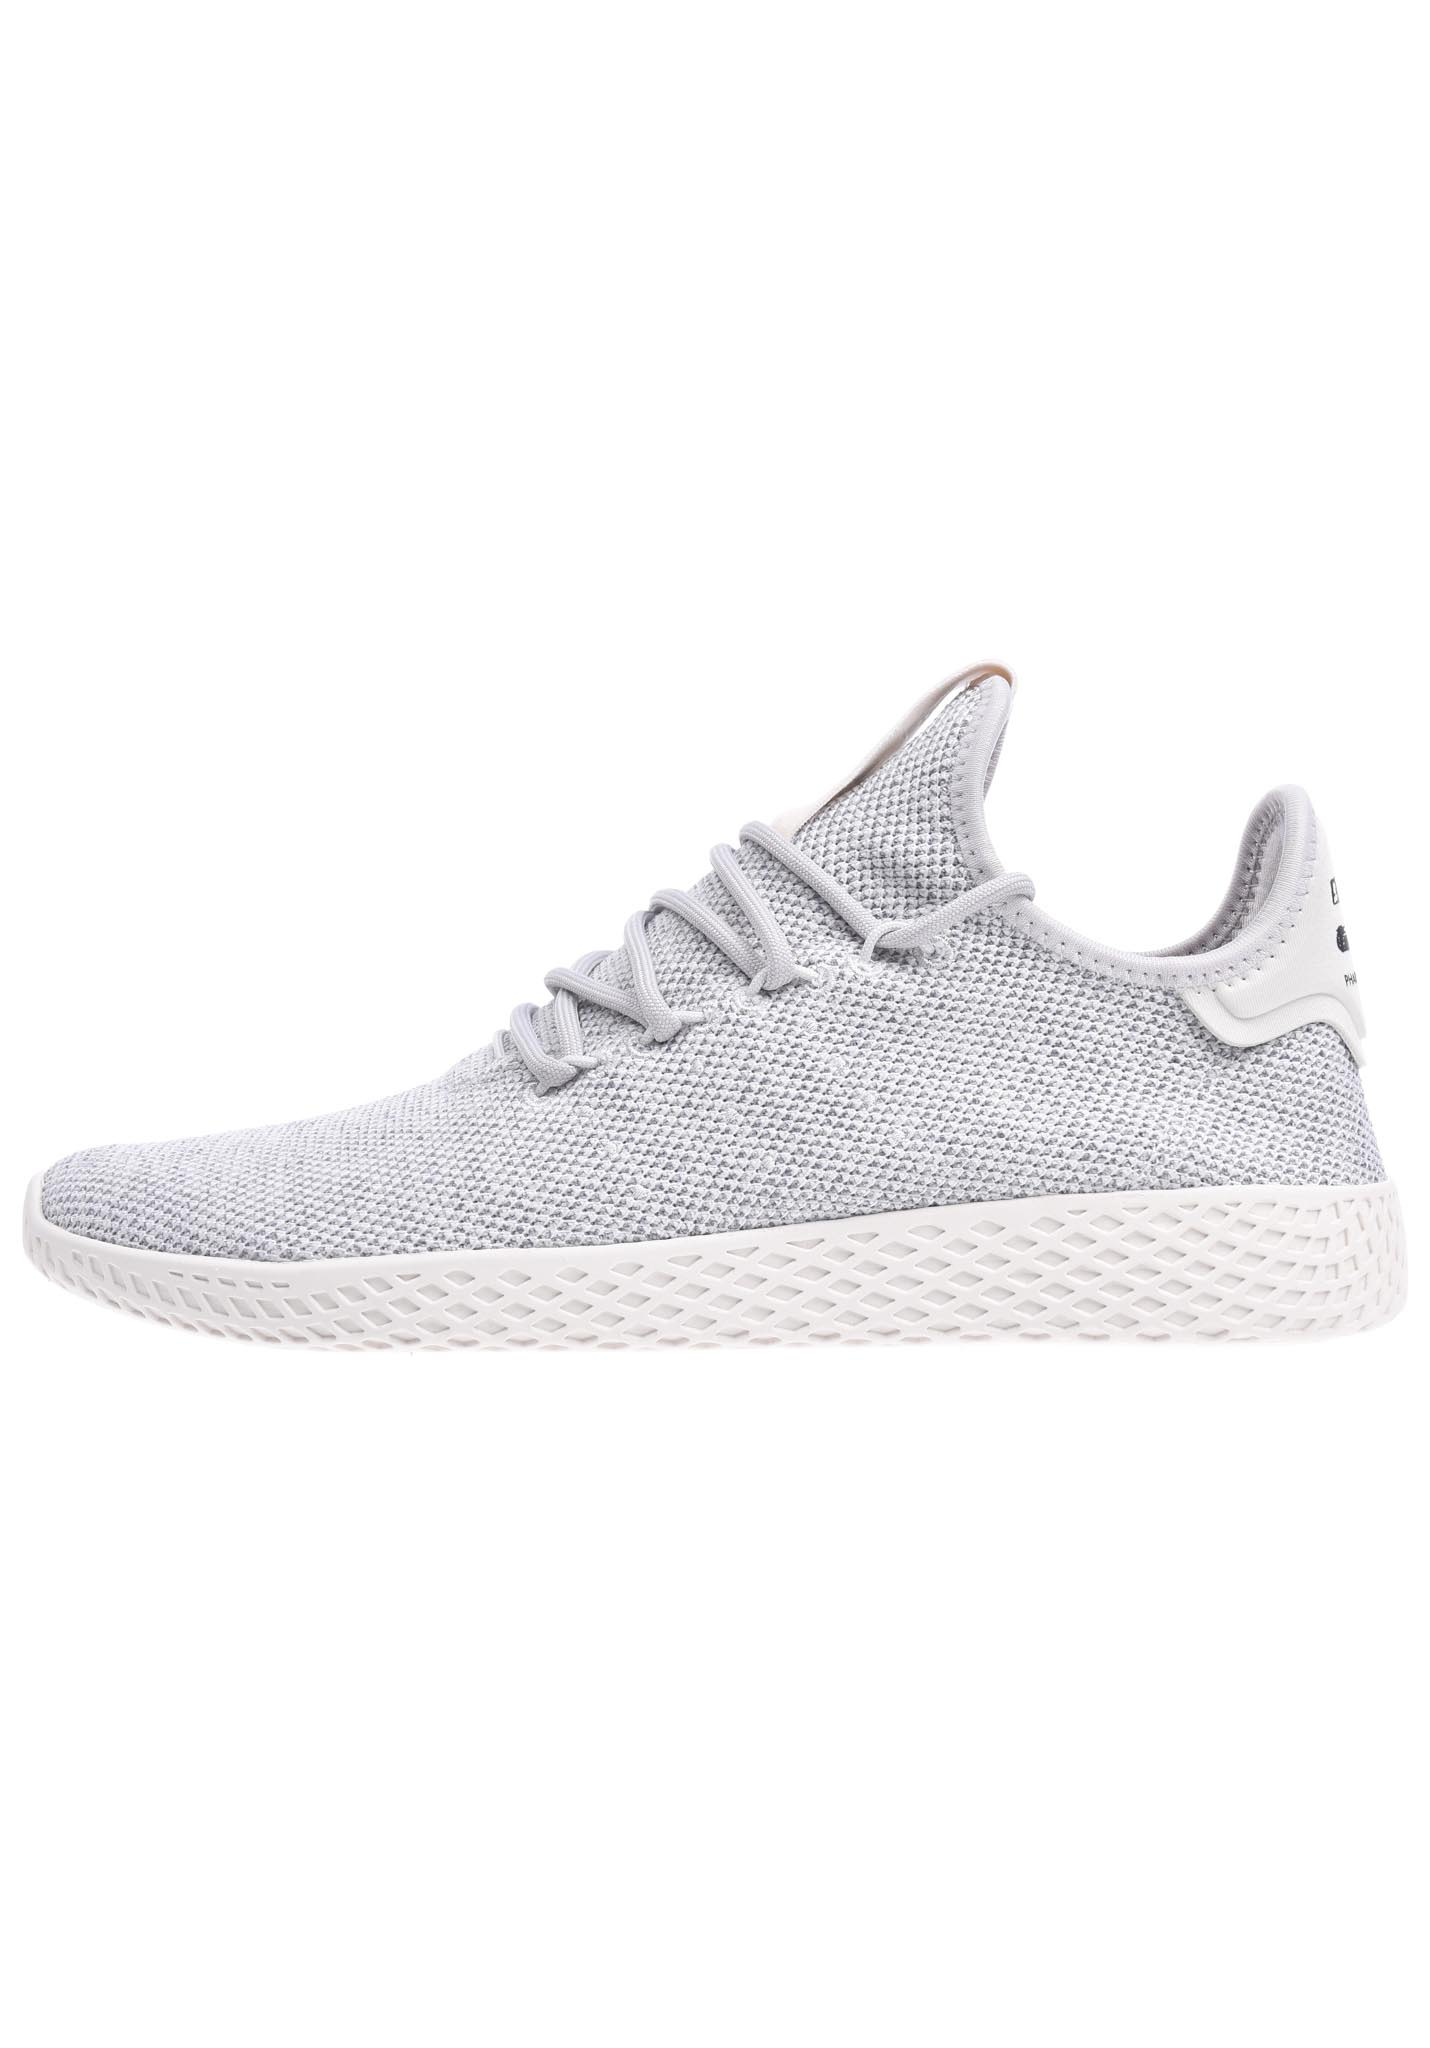 Sneaker Originals Für Adidas Tennis Williams Pharrell Grau Hu Herren 0wnOXN8Pk